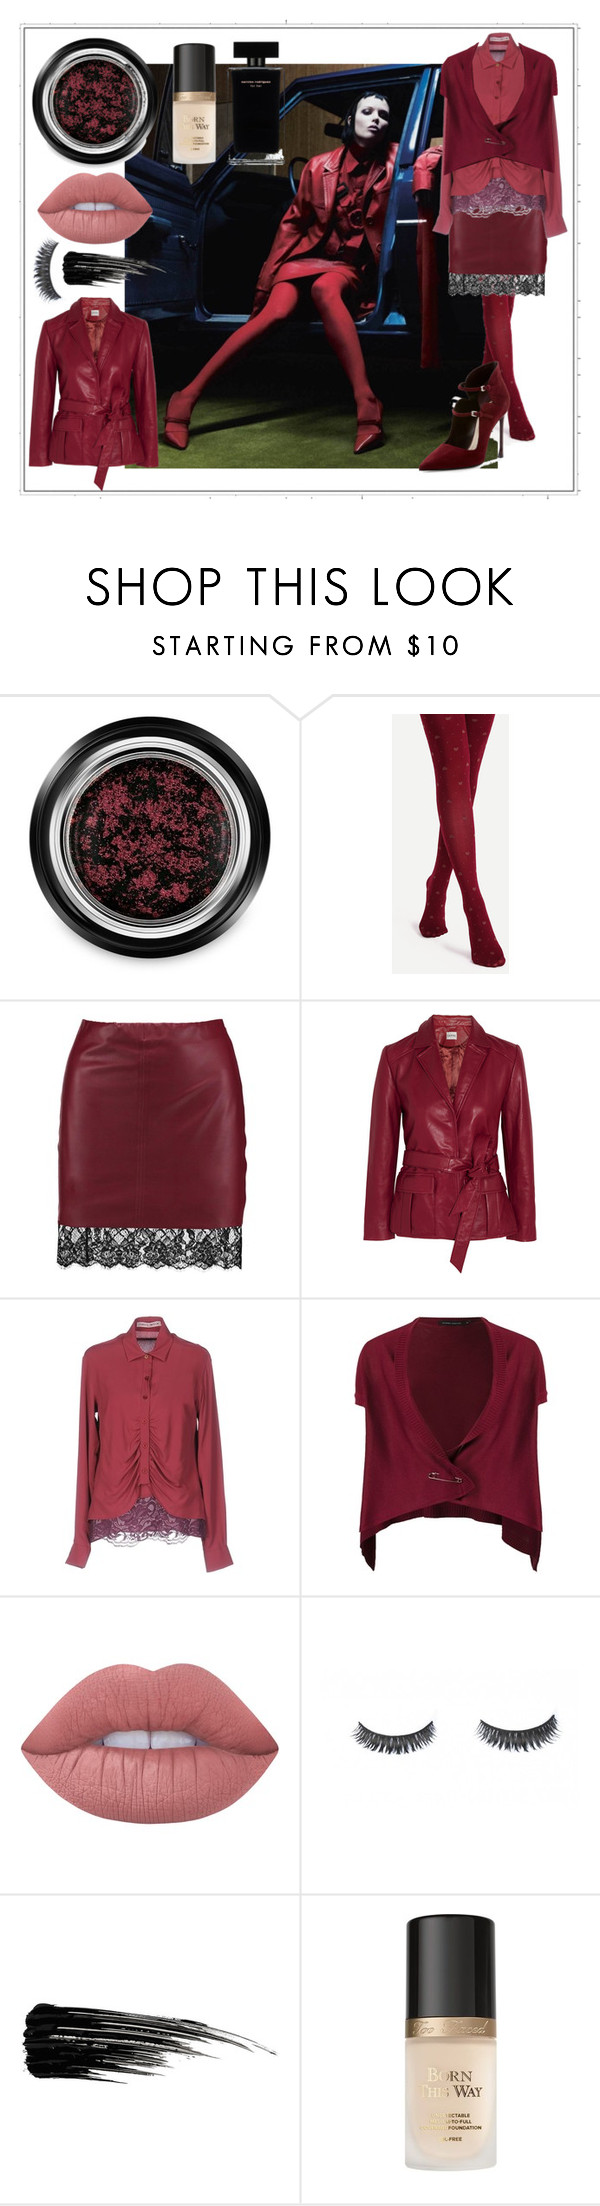 """Red for New Year"" by alexei-puha on Polyvore featuring Giorgio Armani, Boohoo, Ganni, Frankie Morello, Gloria Coelho, Lime Crime, Narciso Rodriguez, Urban Decay, Too Faced Cosmetics and Christian Dior"